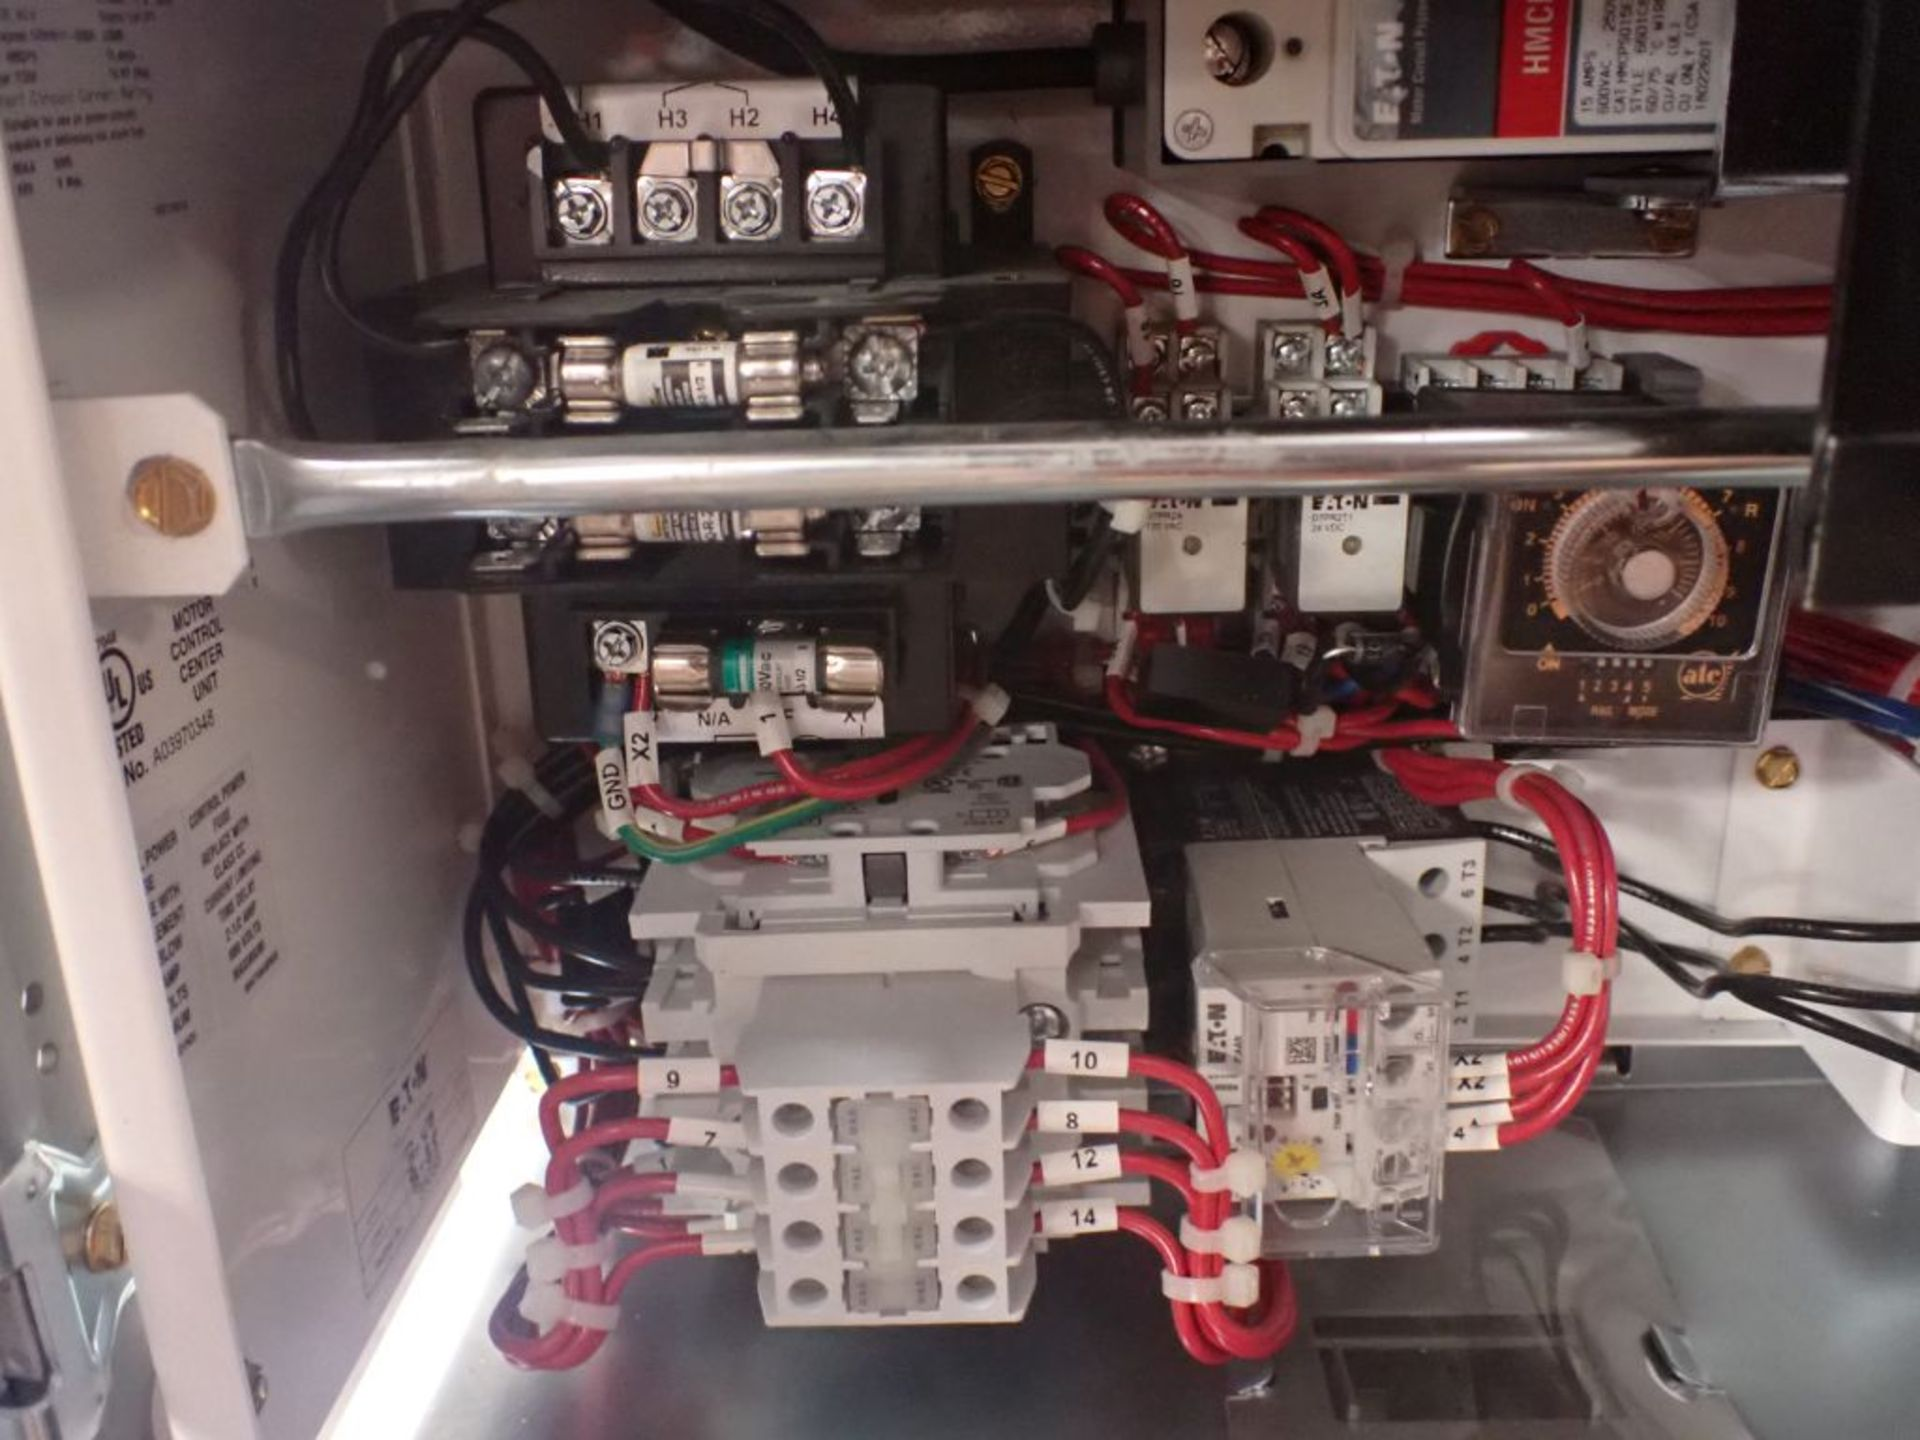 Eaton Freedom 2100 Series Motor Control Center   (2) F206-15A-10HP; (1) F206-30A-10HP; (1) FDRB- - Image 29 of 61